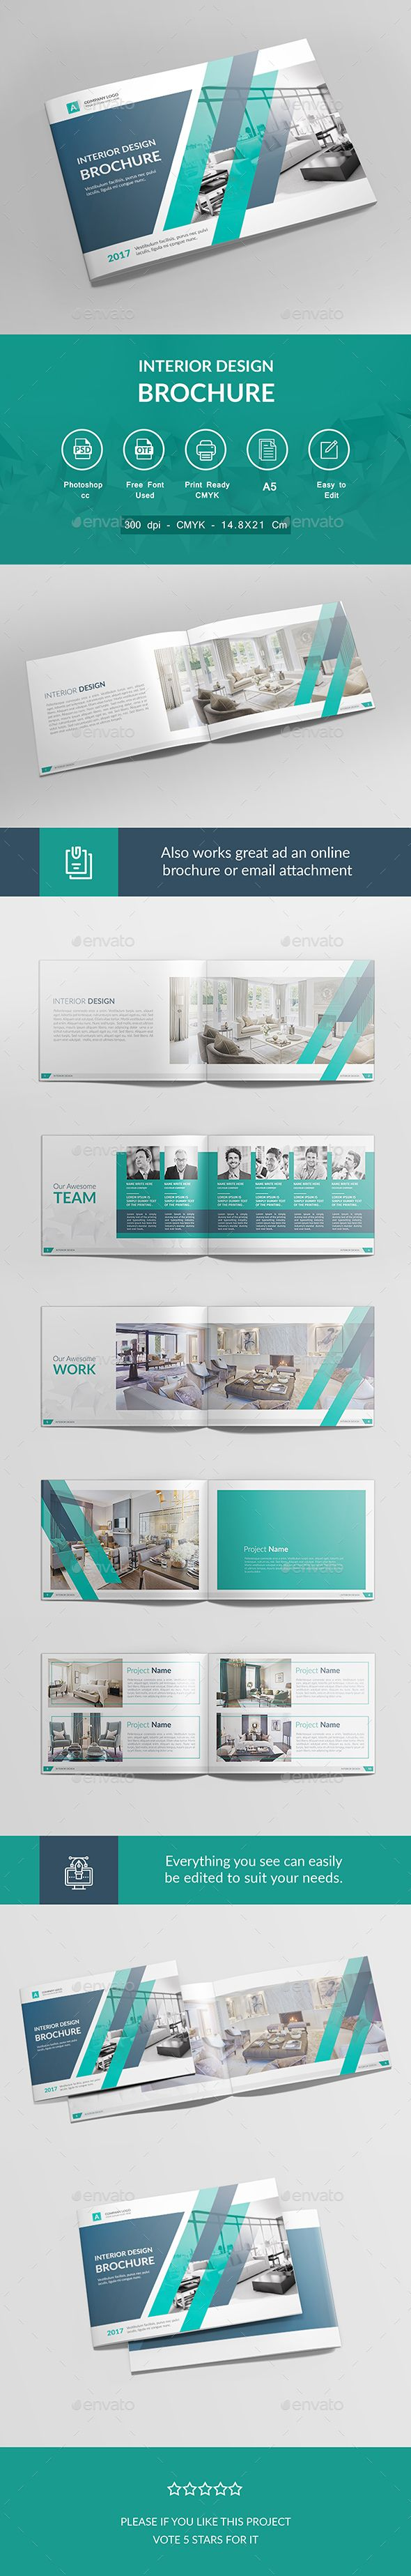 best ideas about interior design resume interior interior design brochure template psd